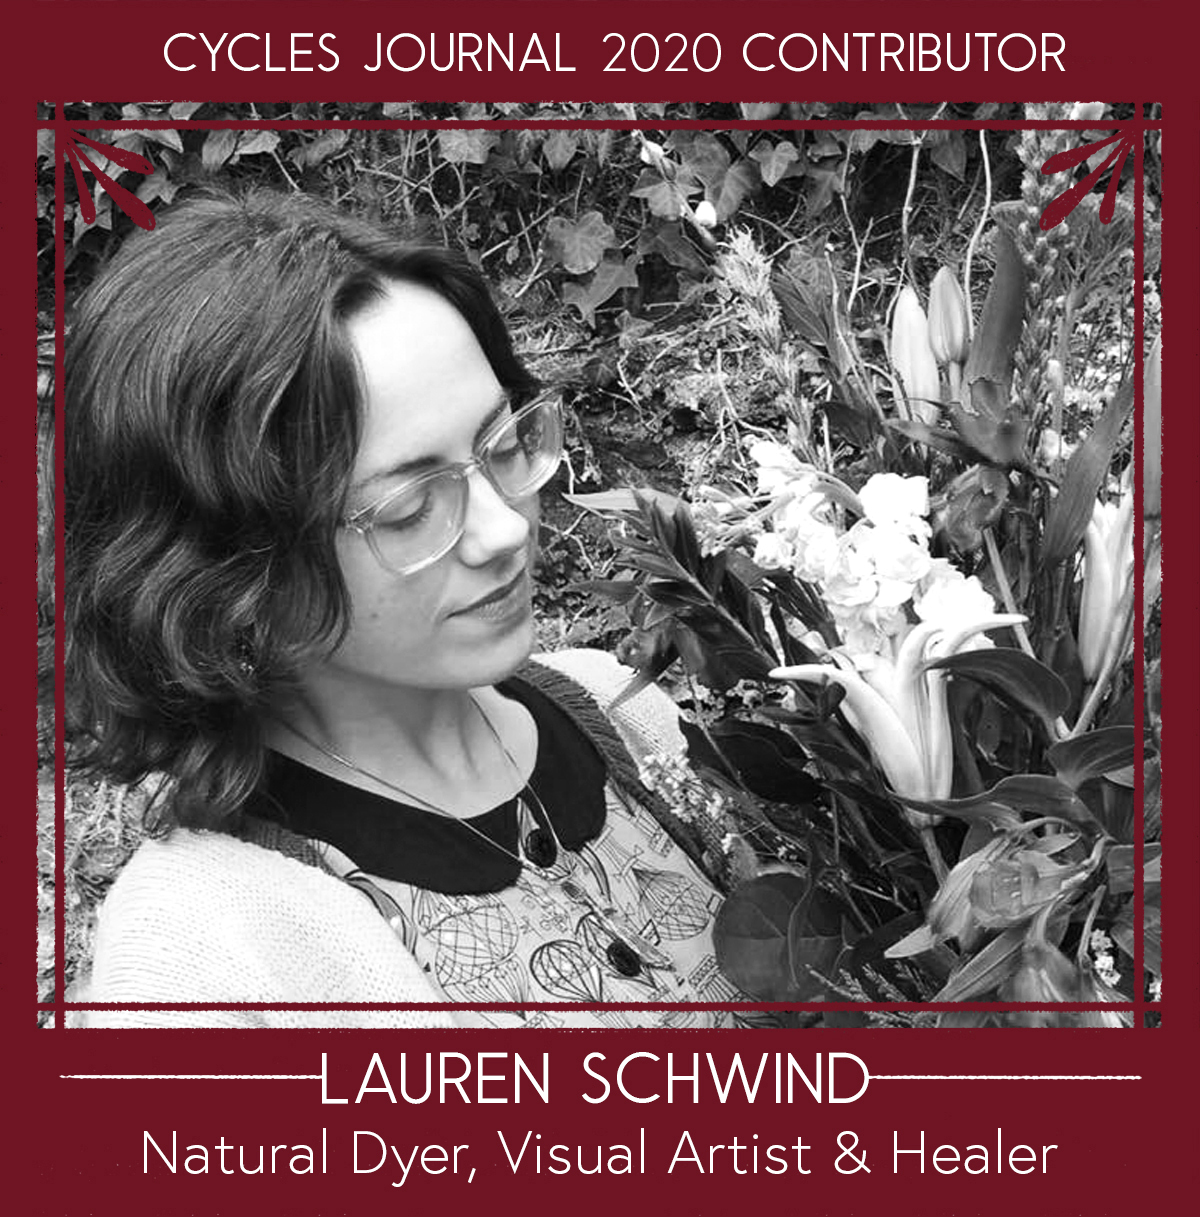 Lauren Schwind - Natural Dyer, Visual Artist & HealerLauren Schwind is an artist living in Philly under the name Subnormalchild. She uses a multitude of magical skills such as drawing, painting, natural dyes while also working as a healer, exploring the modalities of tarot and reiki.Lauren's illustrations explore themes of the divine feminine or the shadow self. Issues of identity, sexuality, connectivity and isolation are depicted with a sense of honesty and reverence with a focus on a central language spoken in arrows and masks. These illustrations take new life as they have been recently transferred into her painting as well as being screen printed onto naturally dyed fabric. As she has explored the divine feminine, Lauren's work has shifted some into using plant-based materials to not just better honor the most sacred feminine (mother earth) but to help further explore the idea of working intuitively with her.Social: @subnormalchildEmail: lauren.n.schwind (@) gmail.comWebsite: www.laurenschwind.com